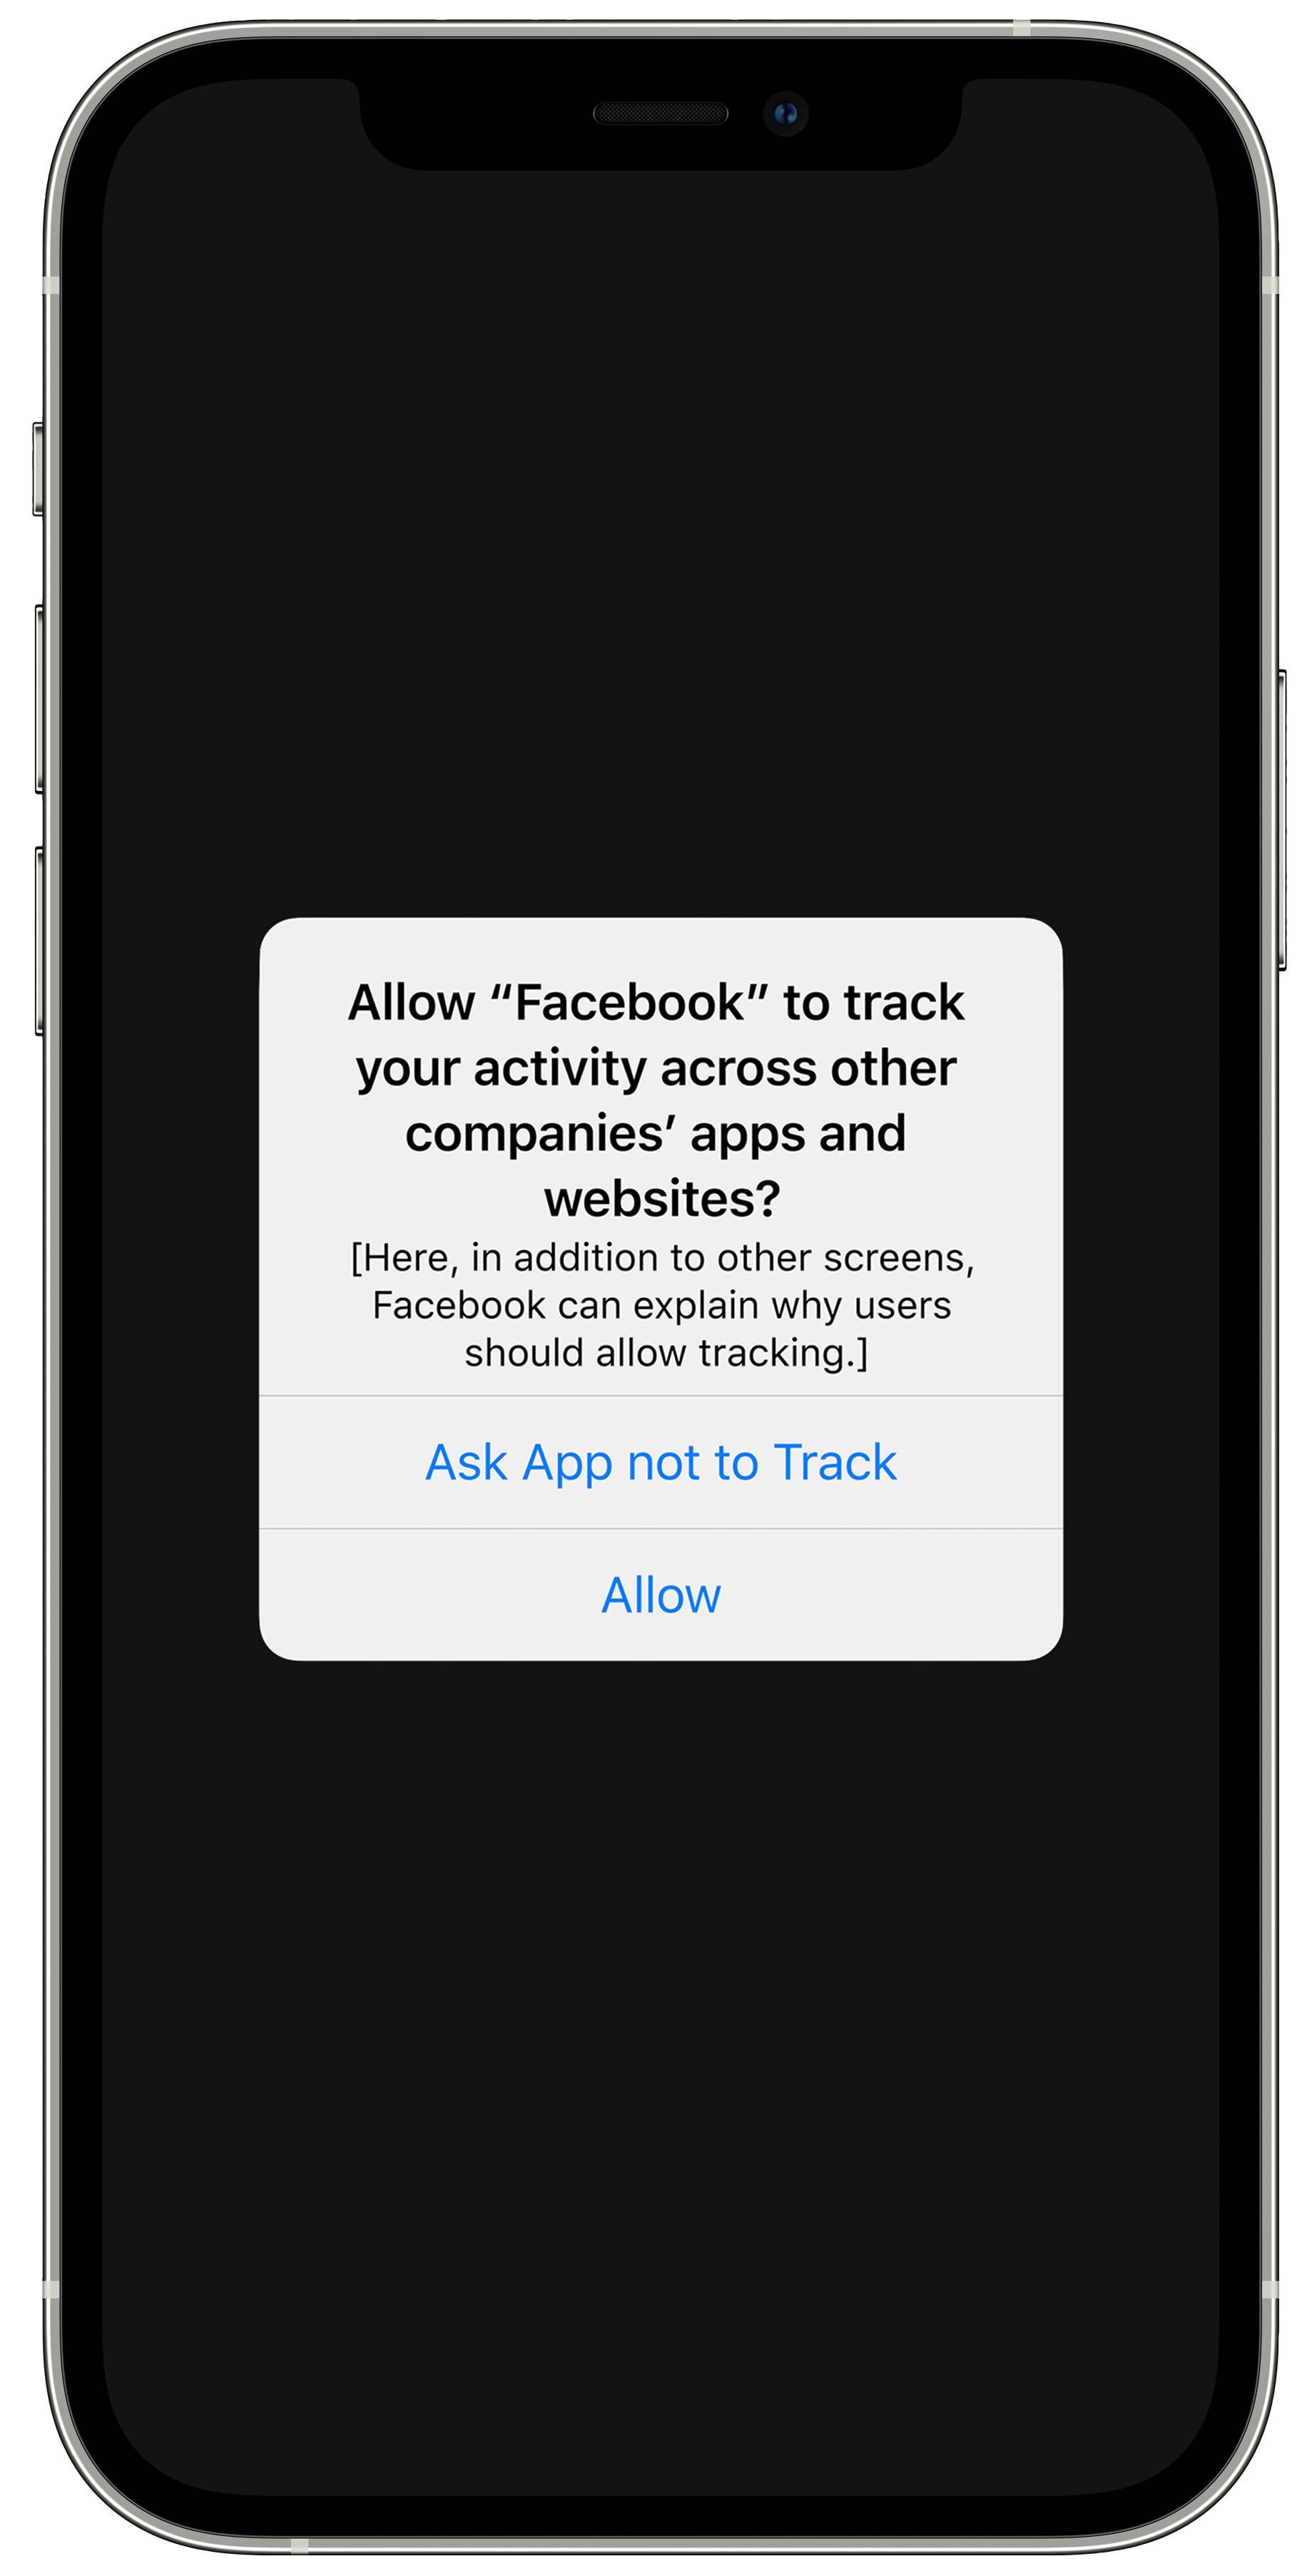 An iPhone displaying an app tracking prompt seeking permission to allow Facebook to track user activity